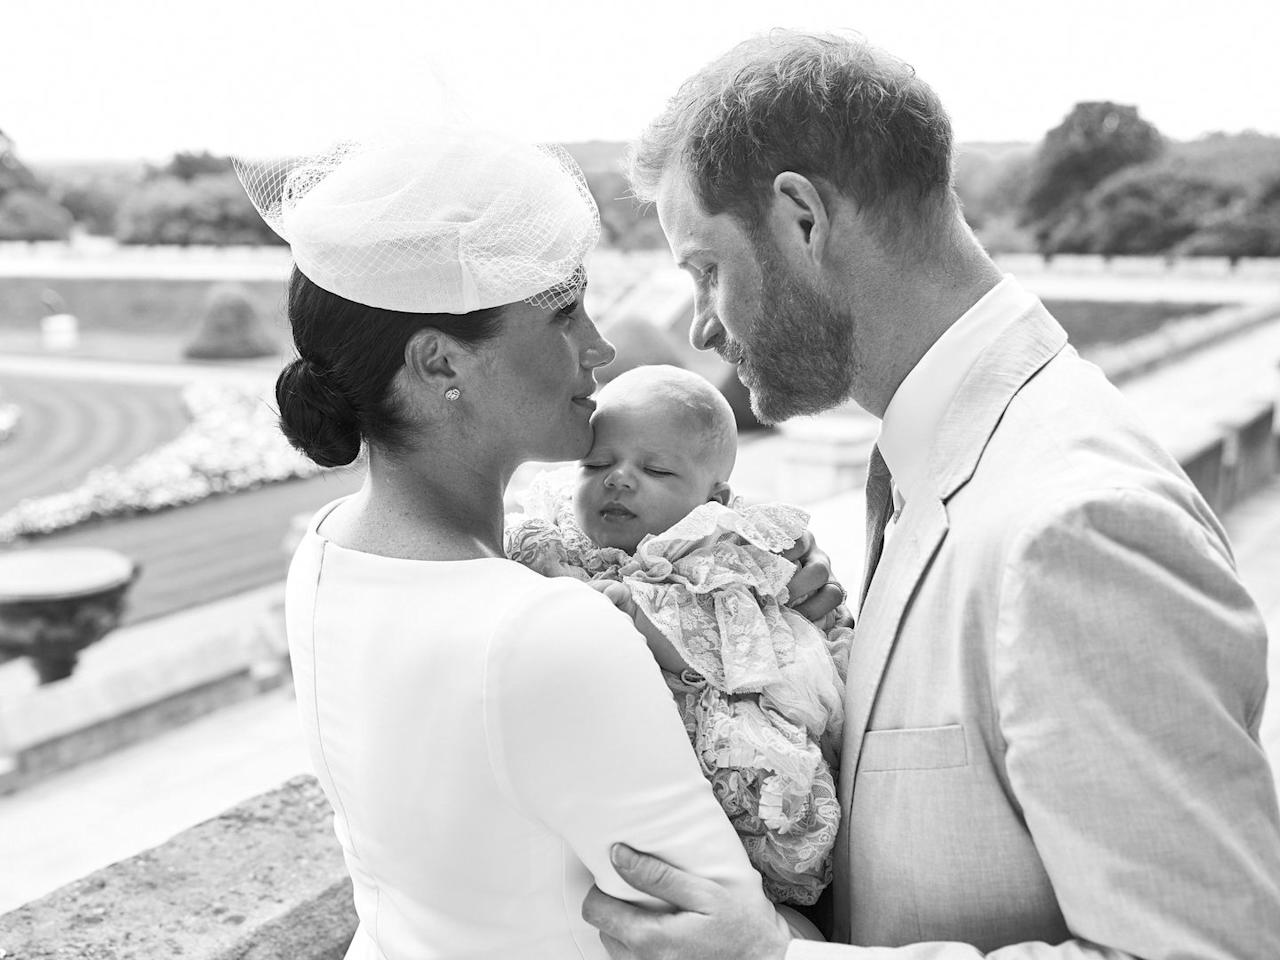 The Duke and Duchess of Sussex pose with baby Archie in the sweetest family portrait, taken by Chris Allerton.